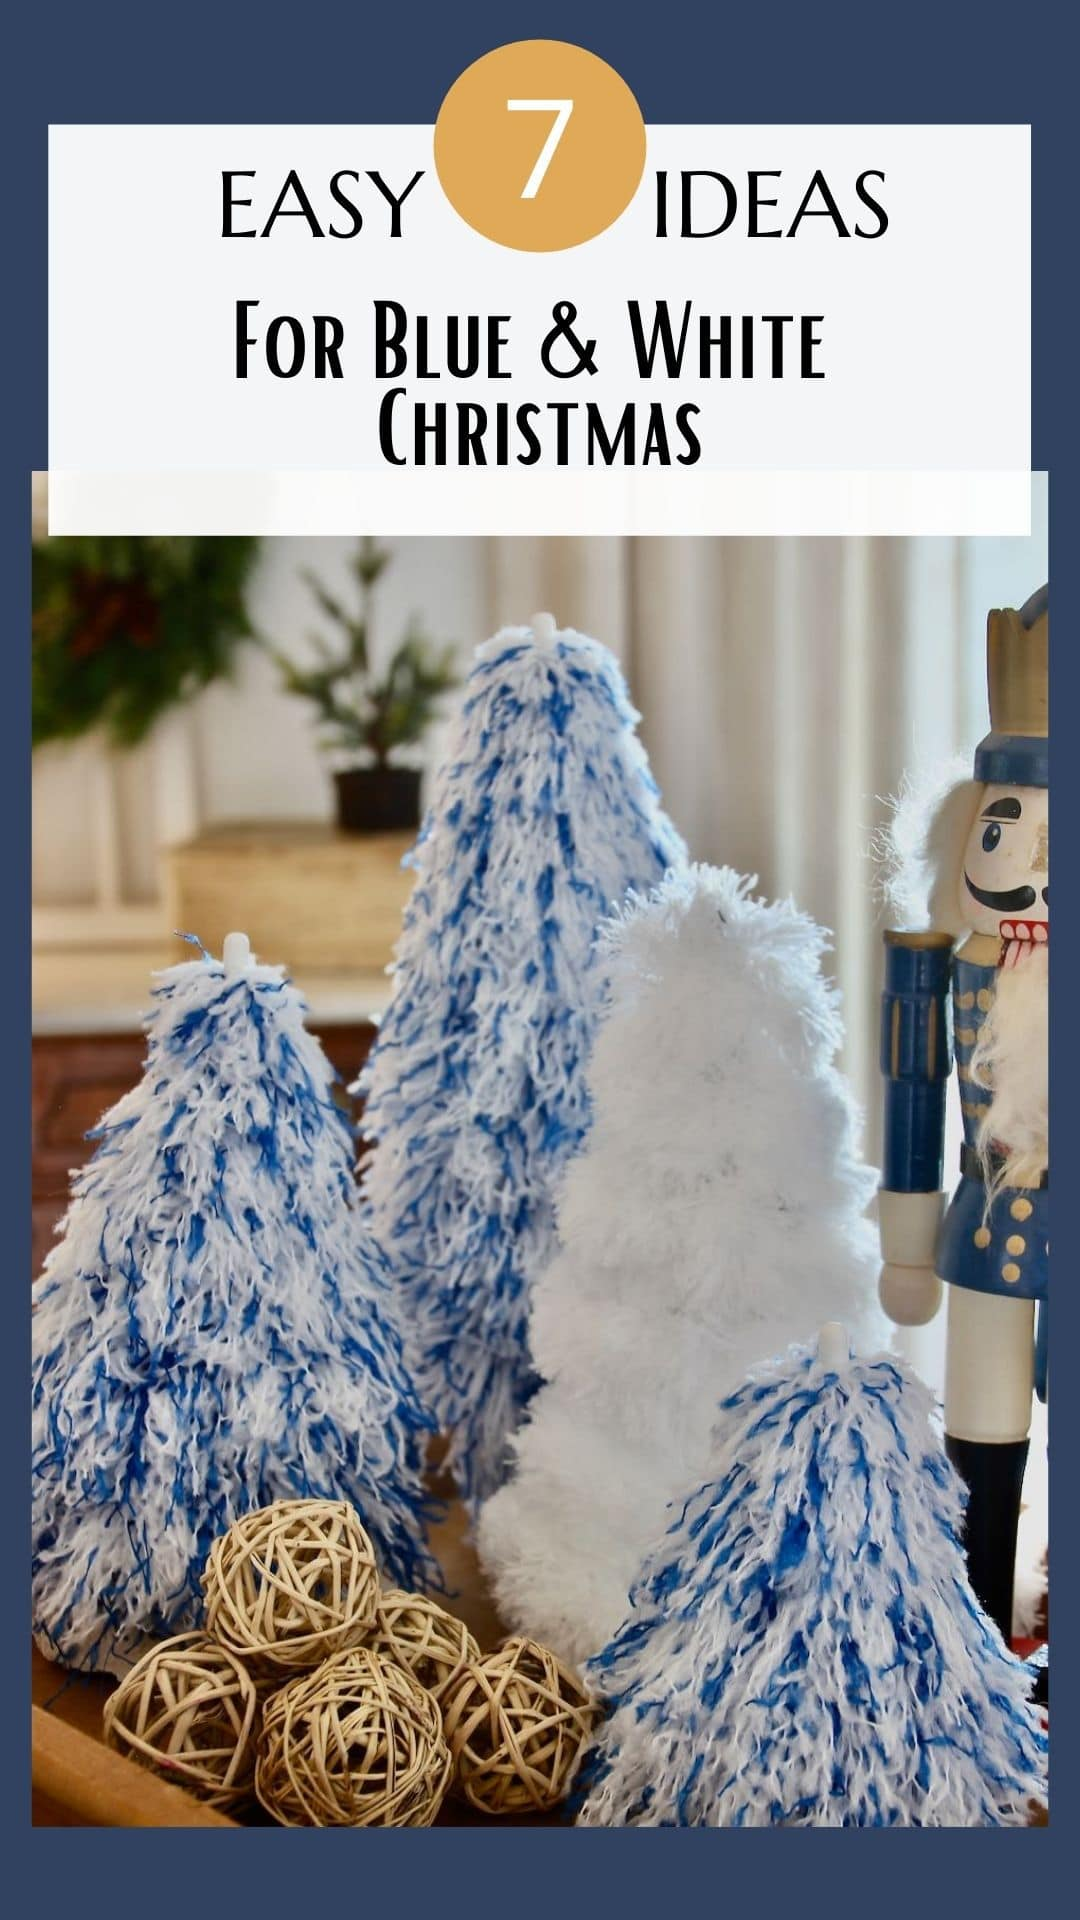 Pin showing 4 fluffy Christmas trees with a wooden soldier on a tray with a title of 7 easy ideas for a blue & white Christmas